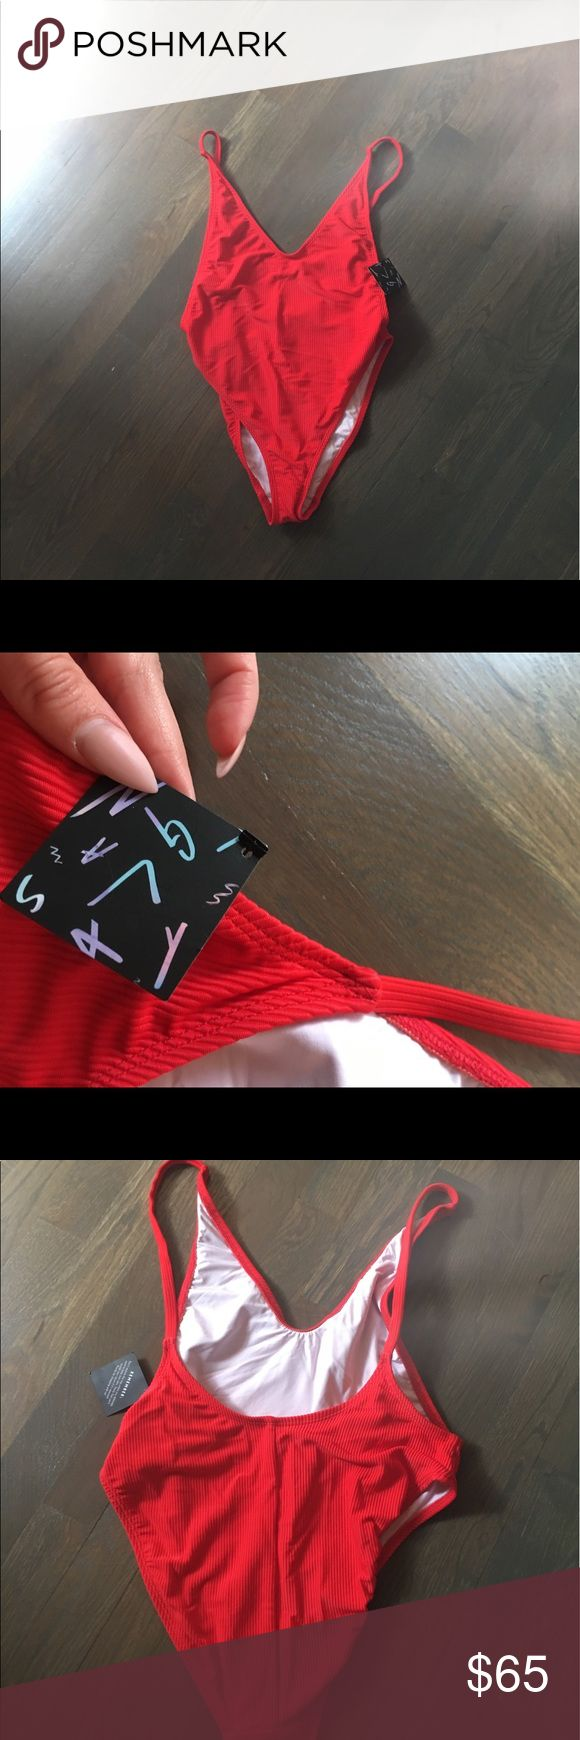 Nasty gal baywatch bathing suit Red baywatch bathing suit, never worn! Tags still attached. Nasty Gal Swim One Pieces